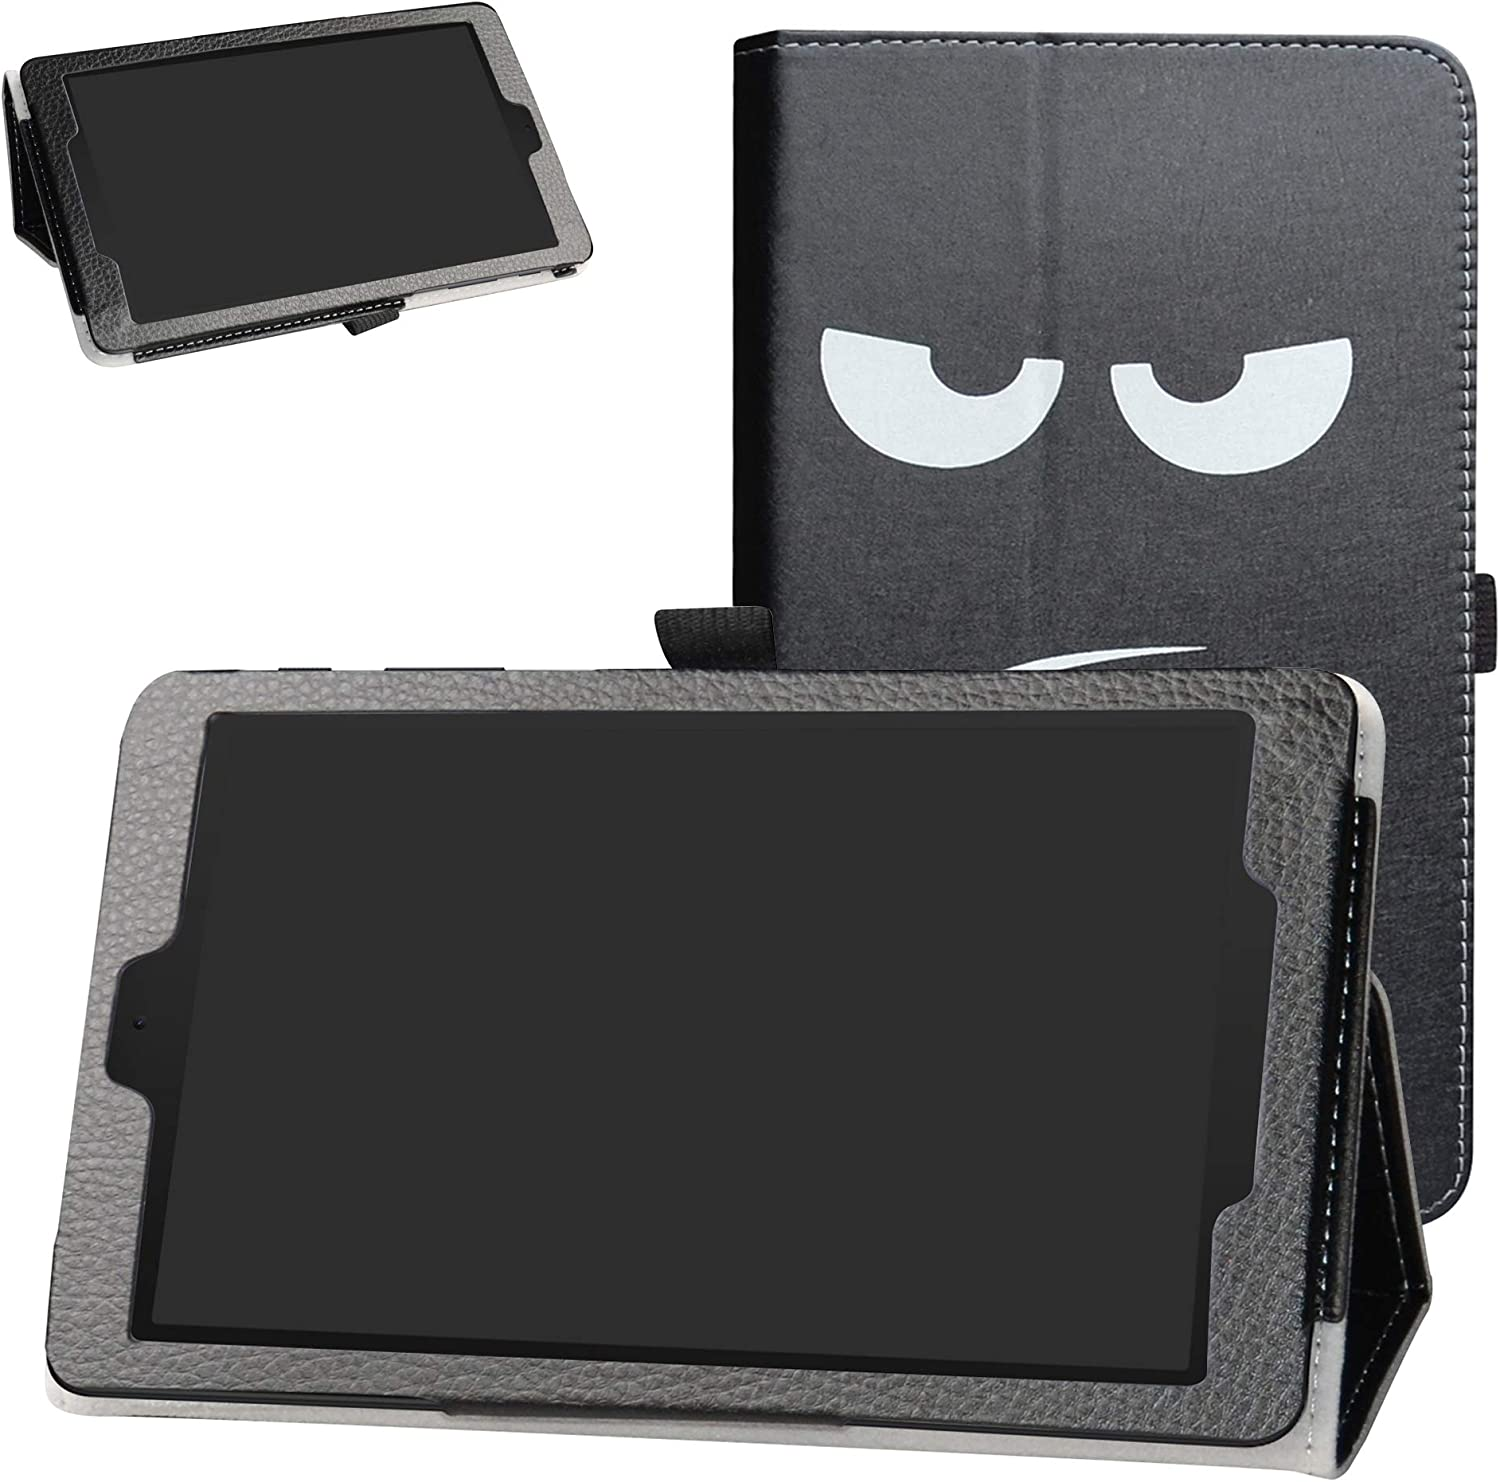 Bige Case for Alcatel Joy Tab Case,Alcatel 3T 8 Tablet Case,PU Leather Folio 2-folding Stand Cover for T-Mobile Alcatel Joy Tab 8-inch Tablet/Alcatel 3T 8-inch Tablet,Don't Touch